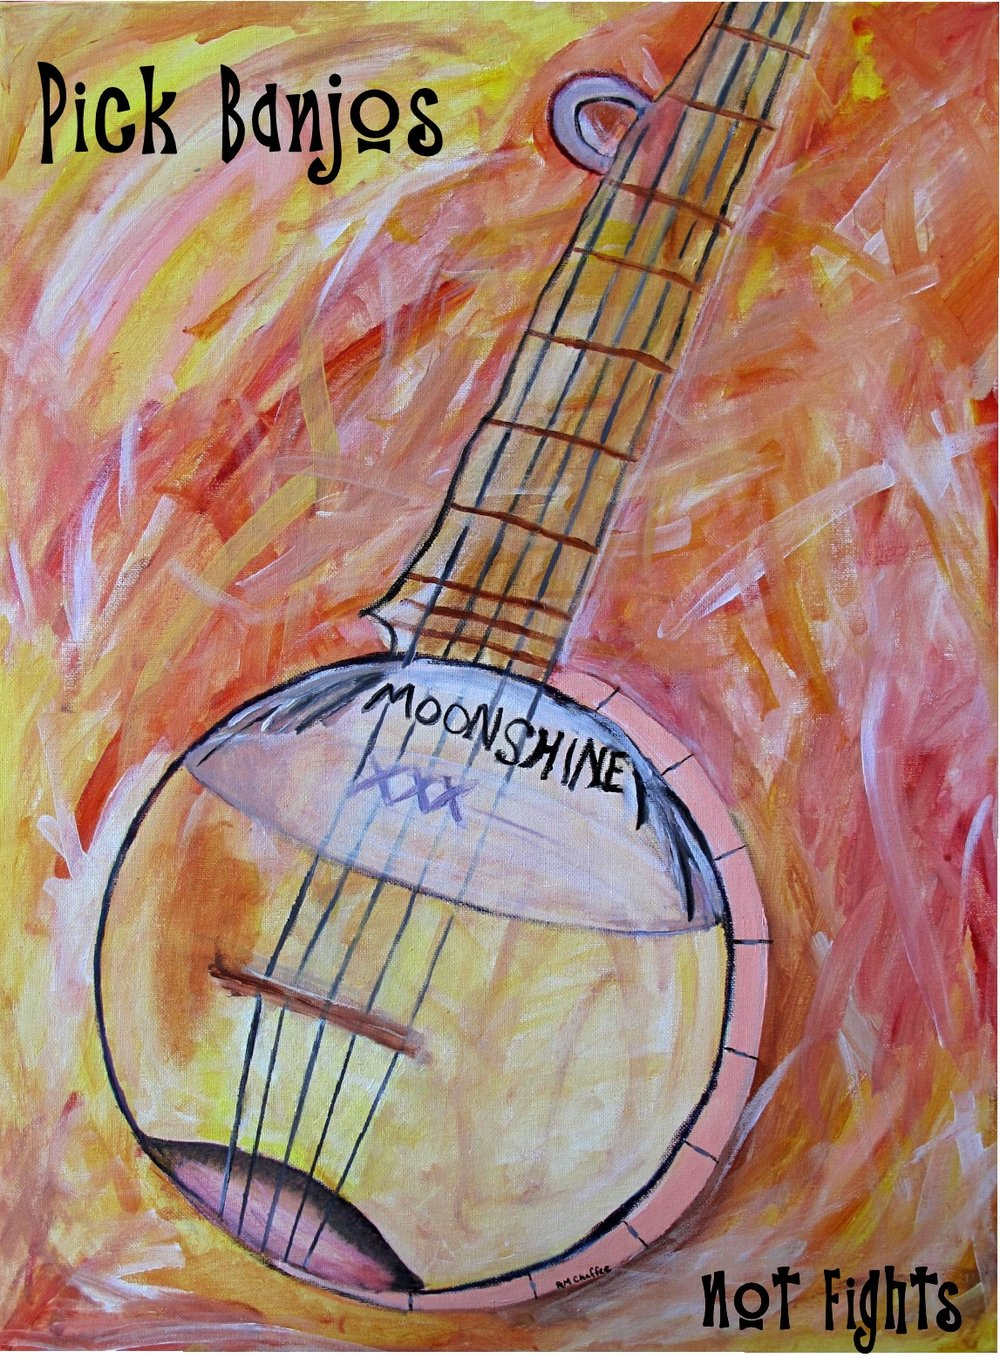 Moonshine Banjo  Pick Banjos not fights with words ss.jpg